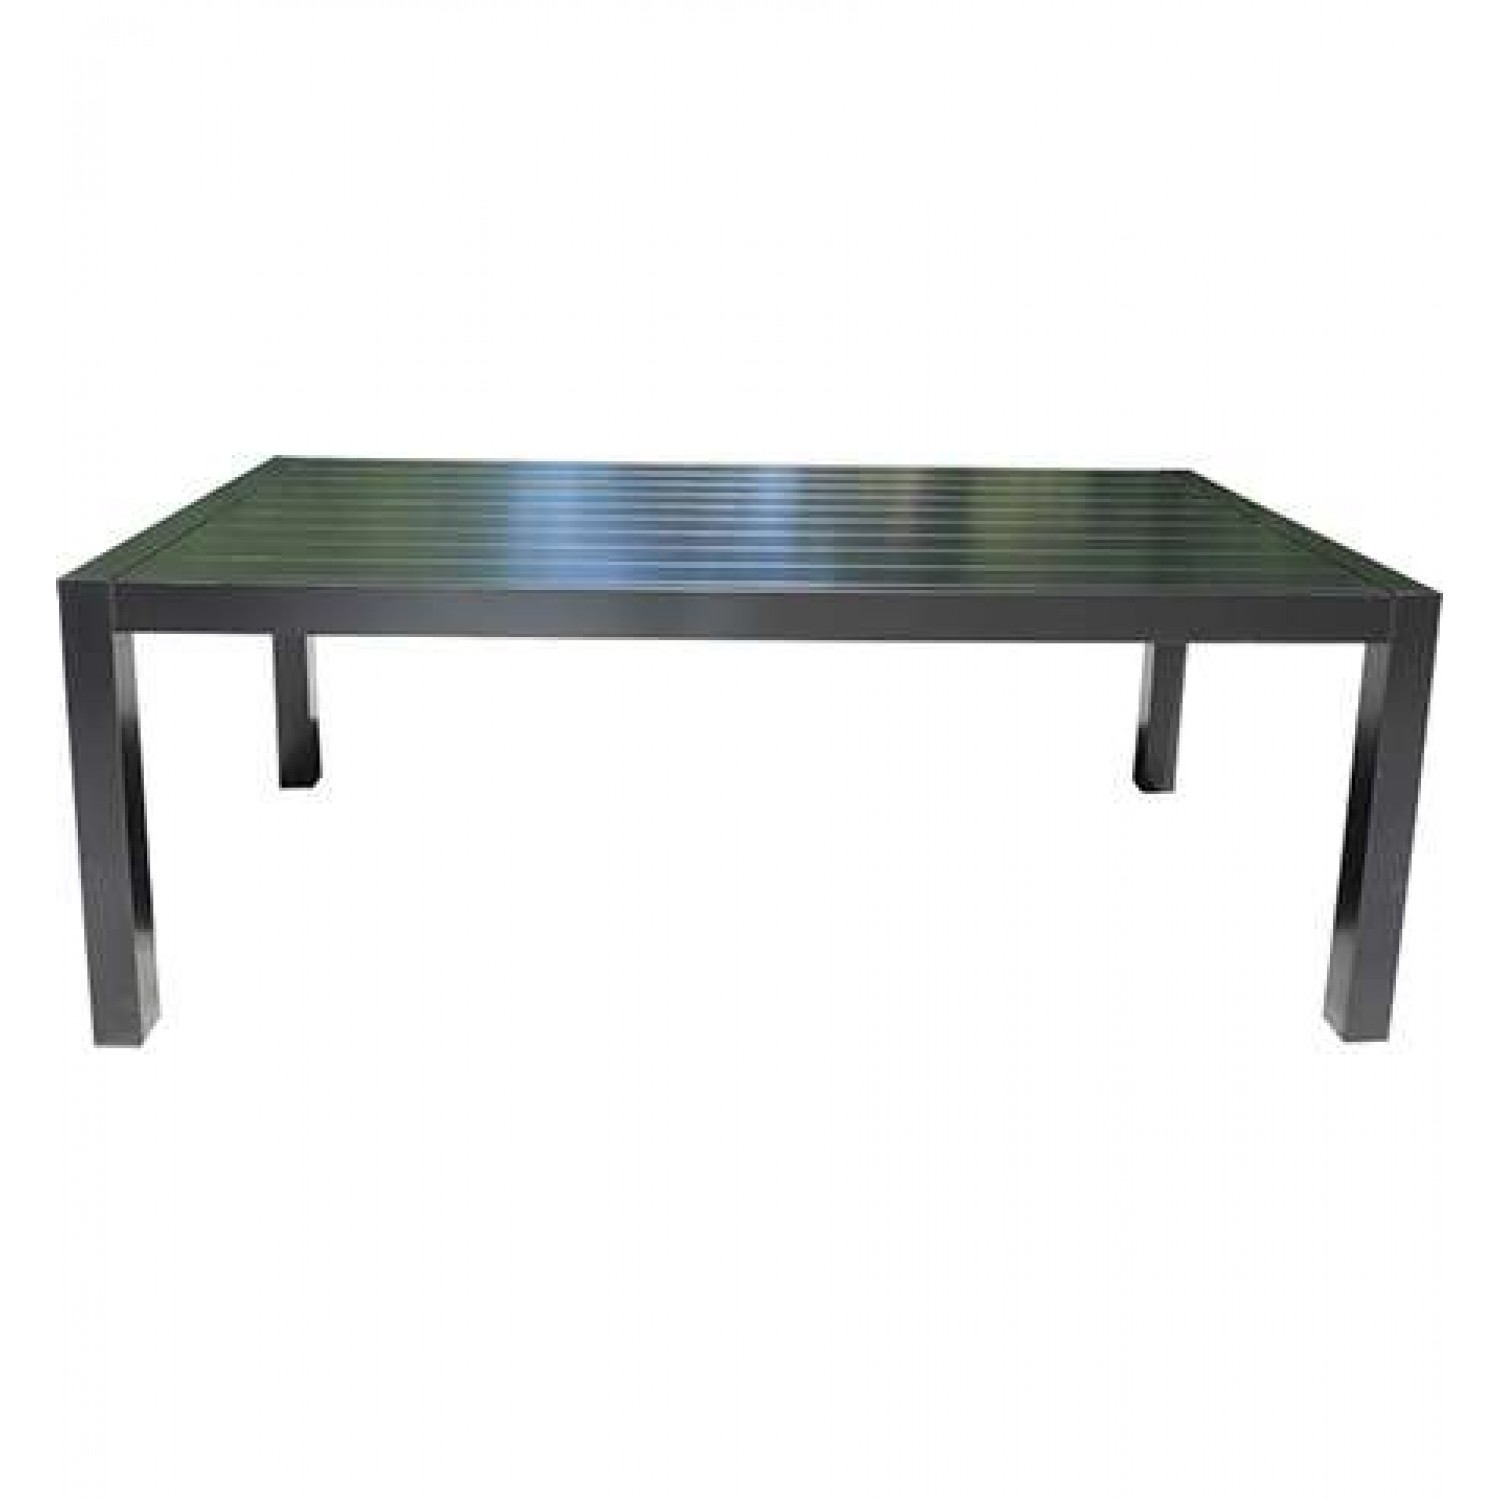 Millcroft Outdoor Dining Table